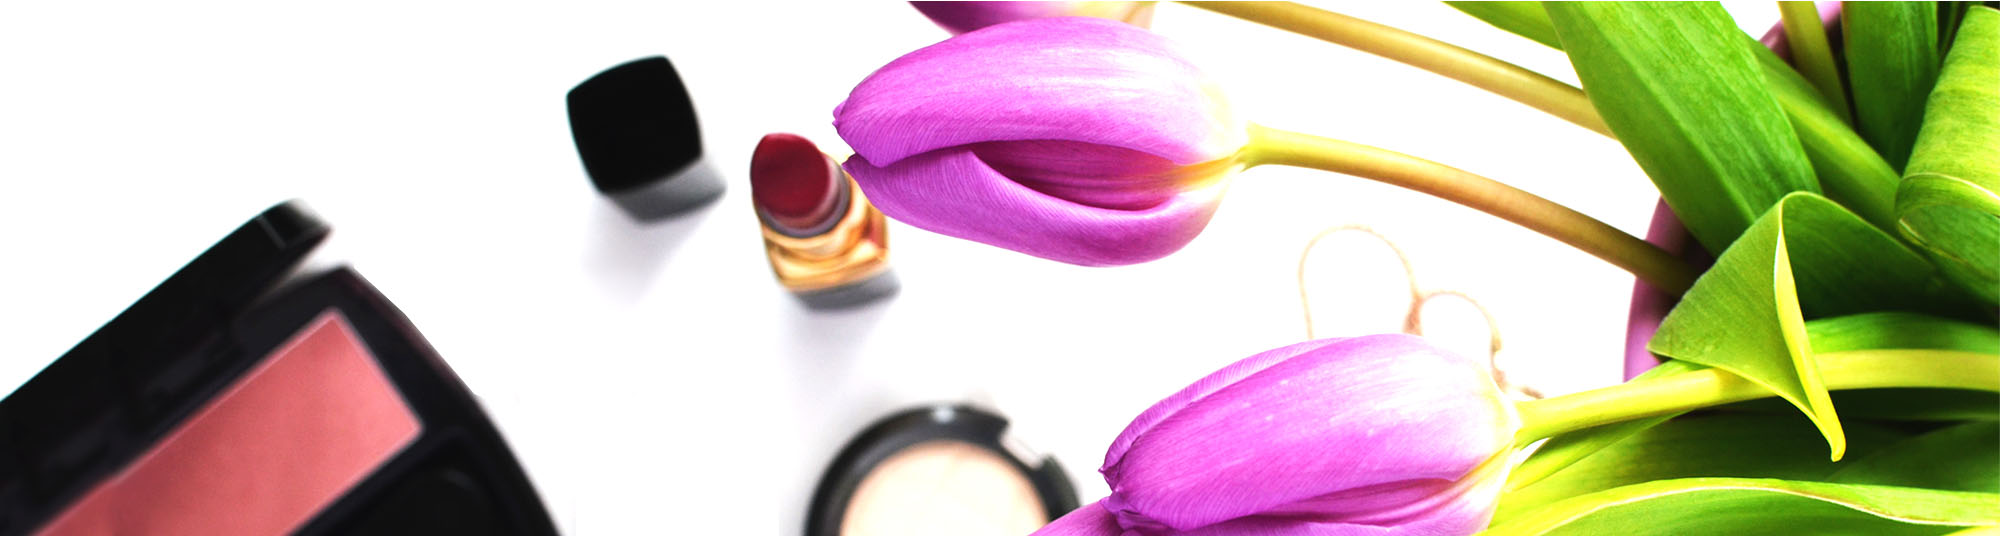 FDA Inspections on cosmetics and skincare